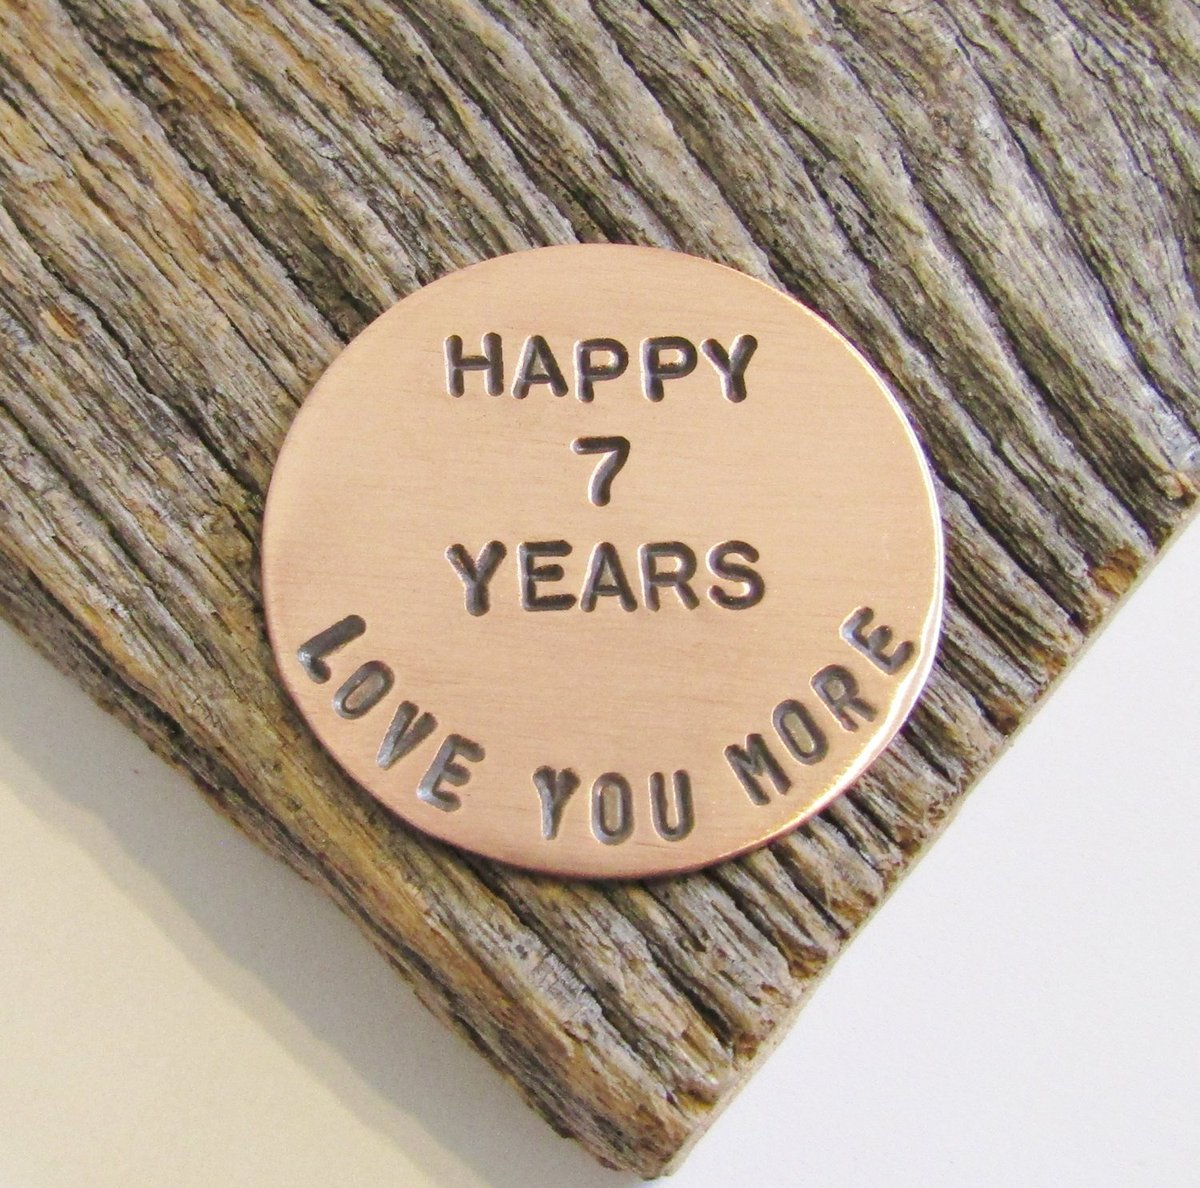 ... Golf Ball Marker for Husband 7 Year Anniversary Gift for Golfer Wife Copper Ball Marker Simple Gifts for Men http://tuppu.net/a9388a22 #CandTCustomLures ...